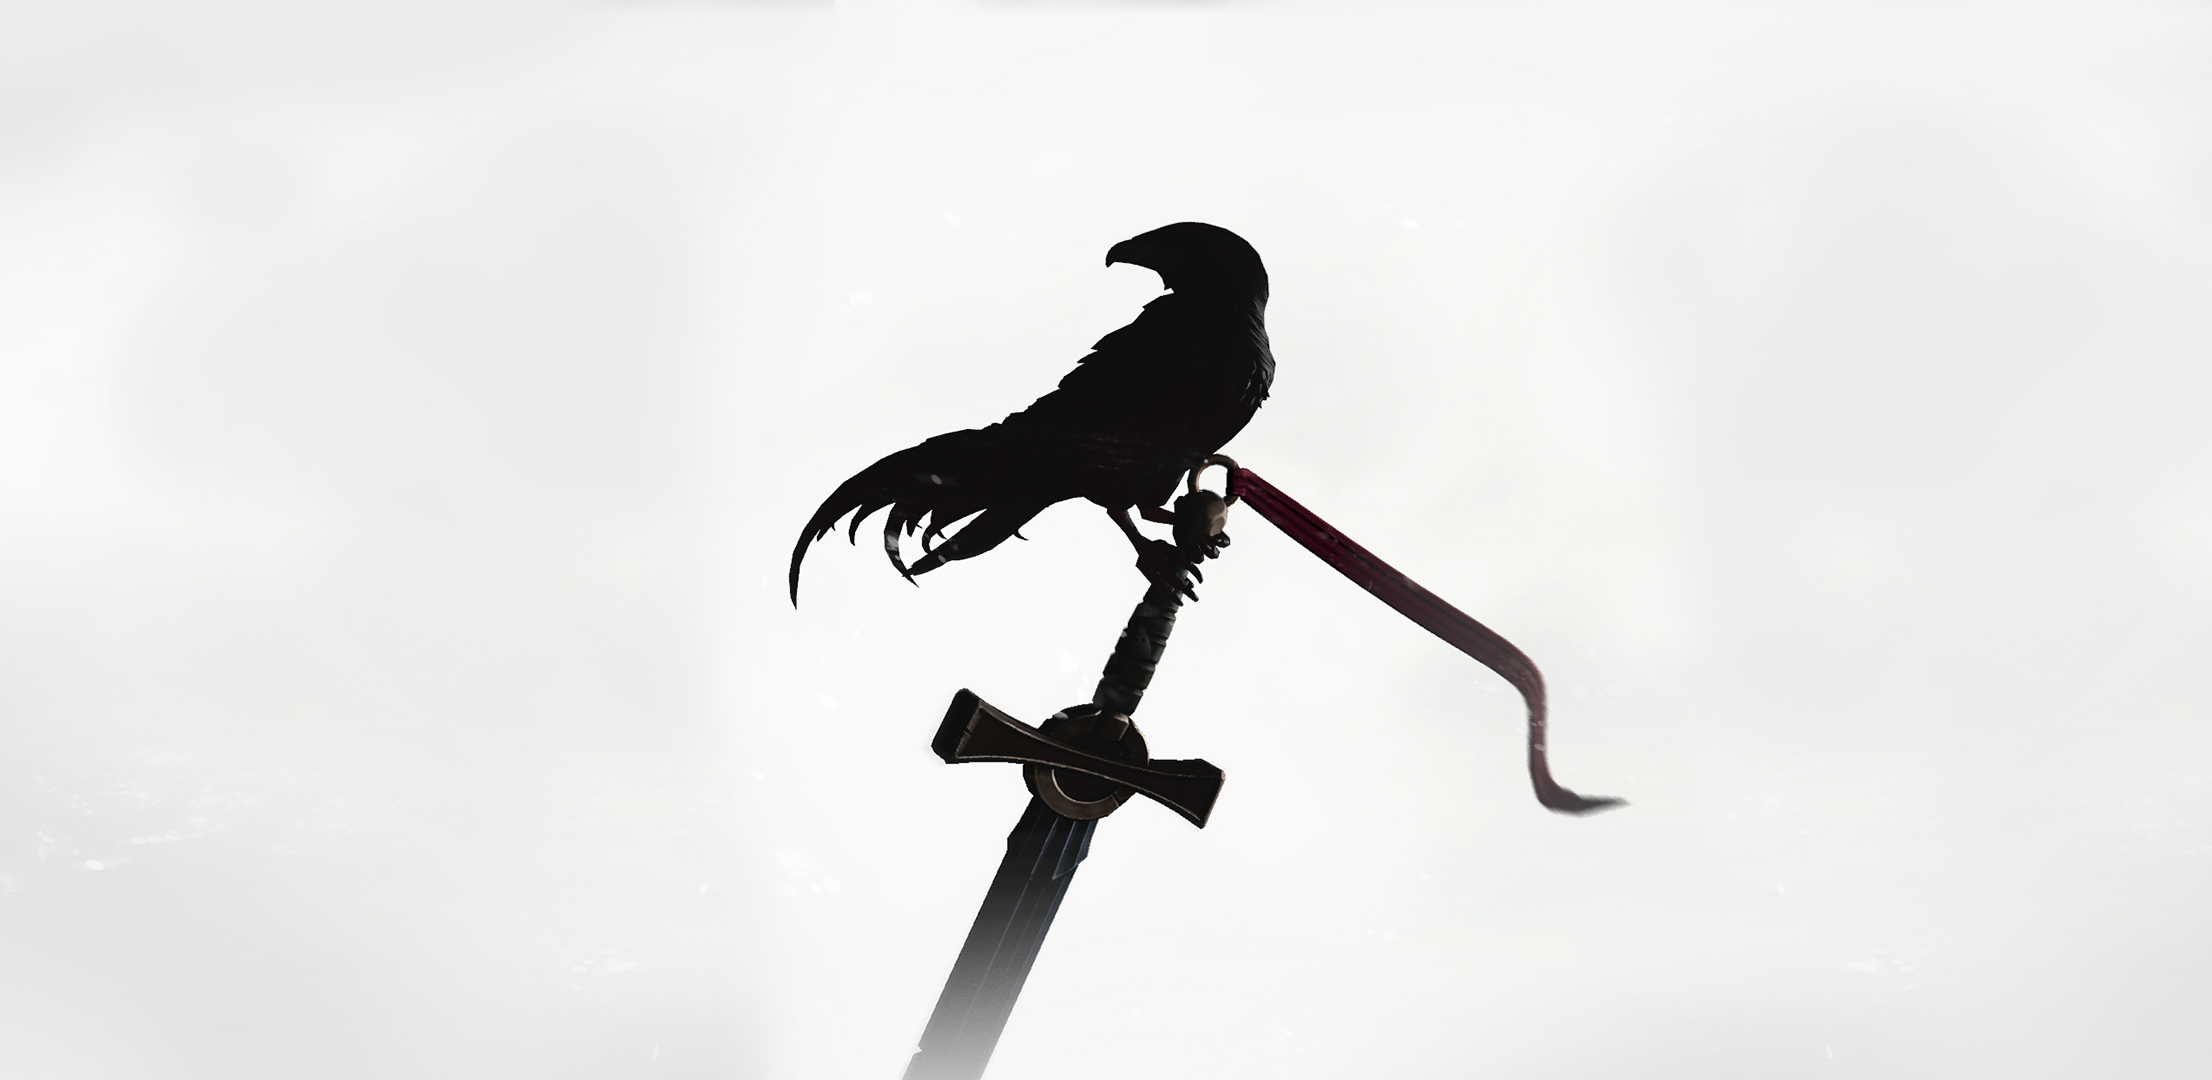 CrowLogin Wallpaper NoWatermark